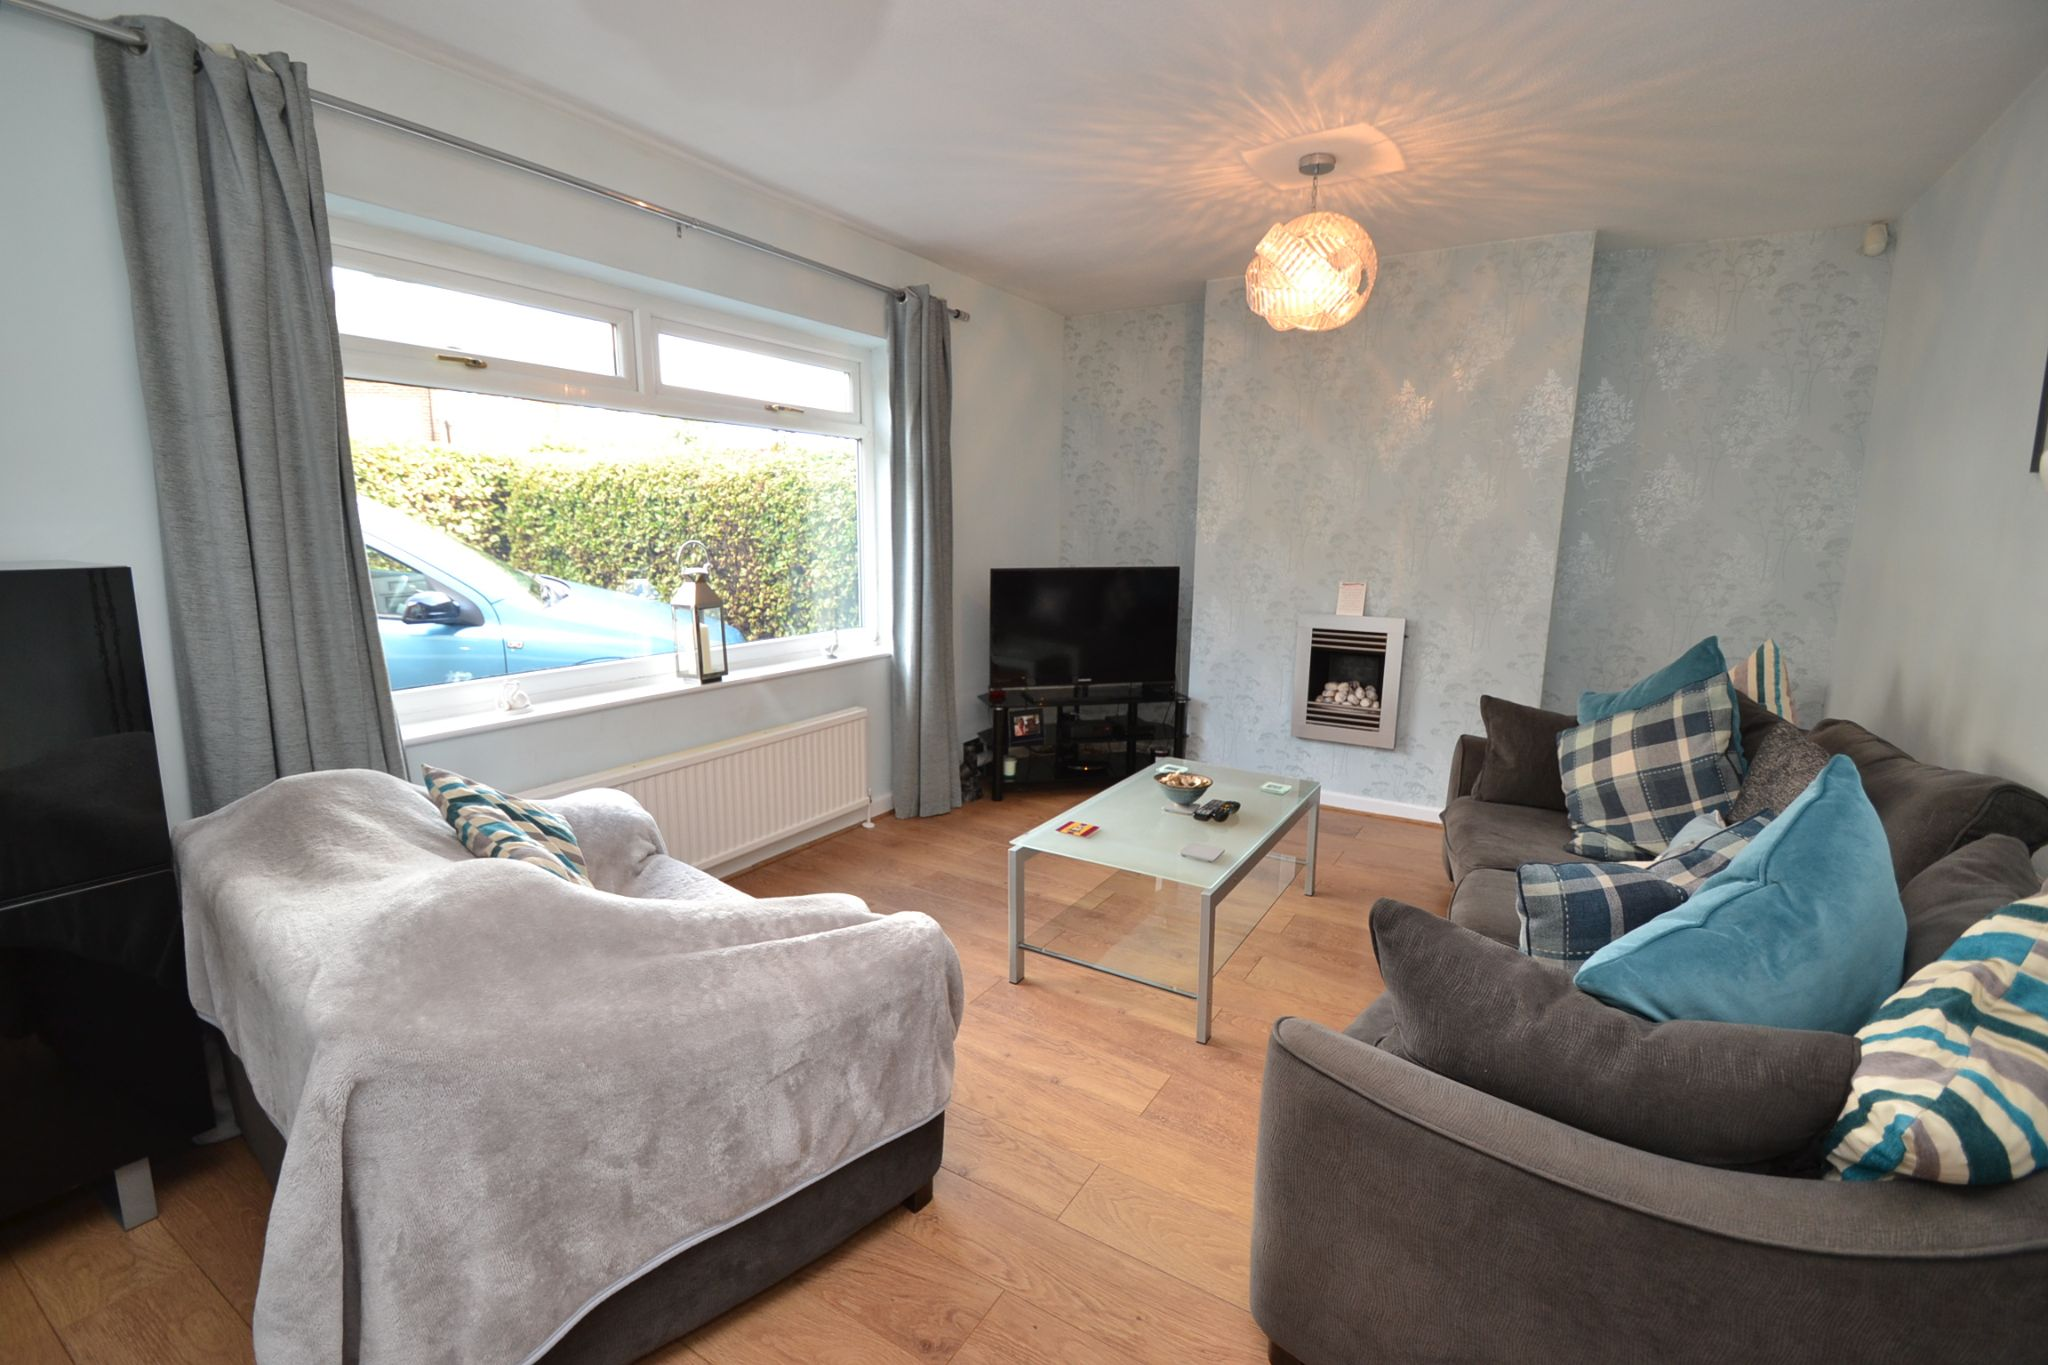 3 Bedroom Semi-detached Dormer House For Sale - Photograph 2